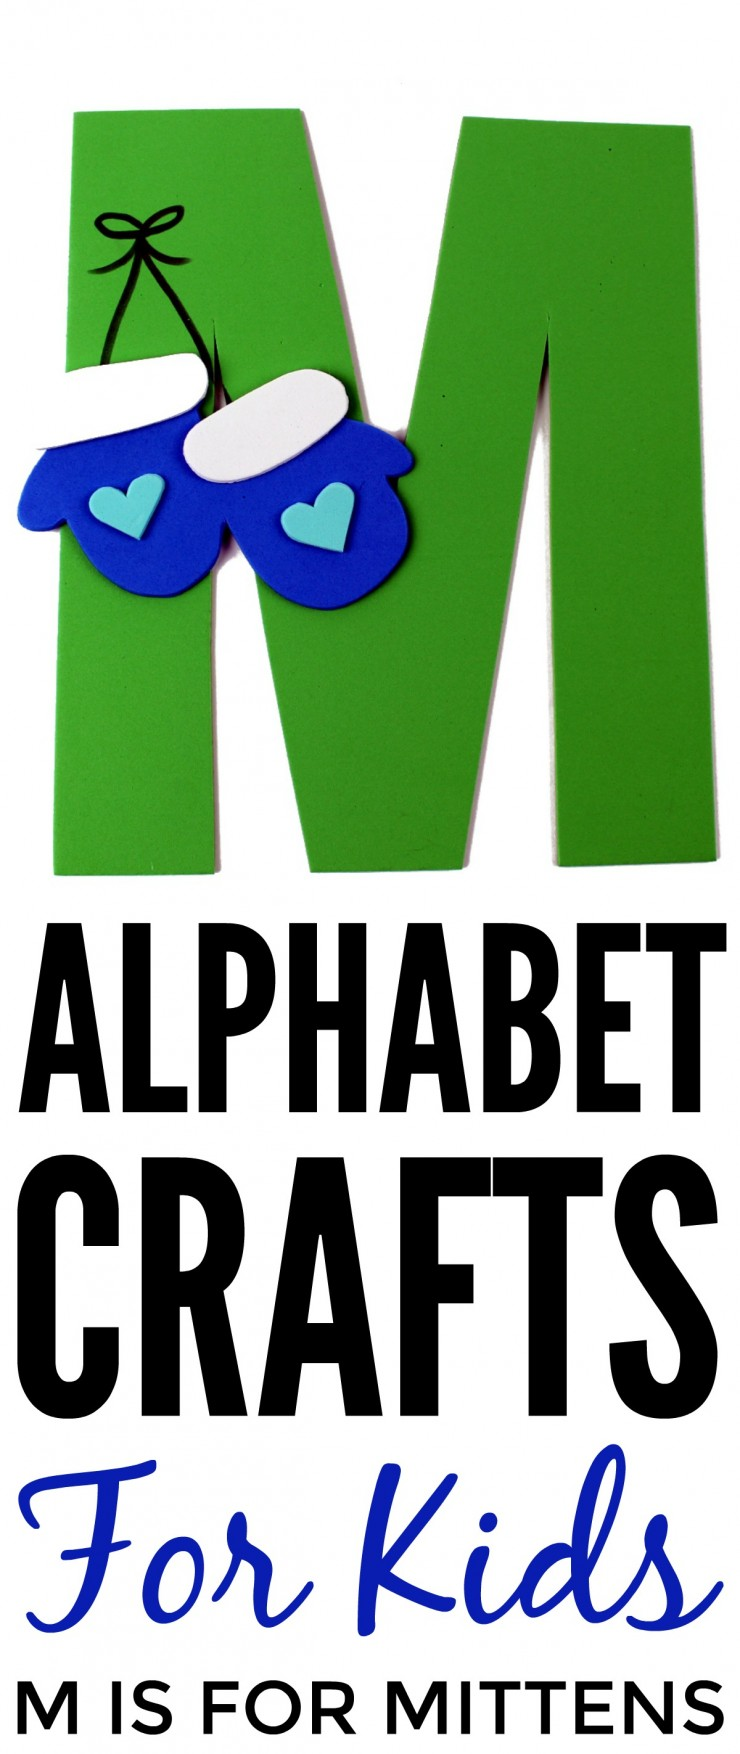 This week in my series of ABCs kids crafts featuring the Alphabet, we are doing a M is for Mitten craft. These Alphabet Crafts For Kids are a fun way to introduce your child to the alphabet.